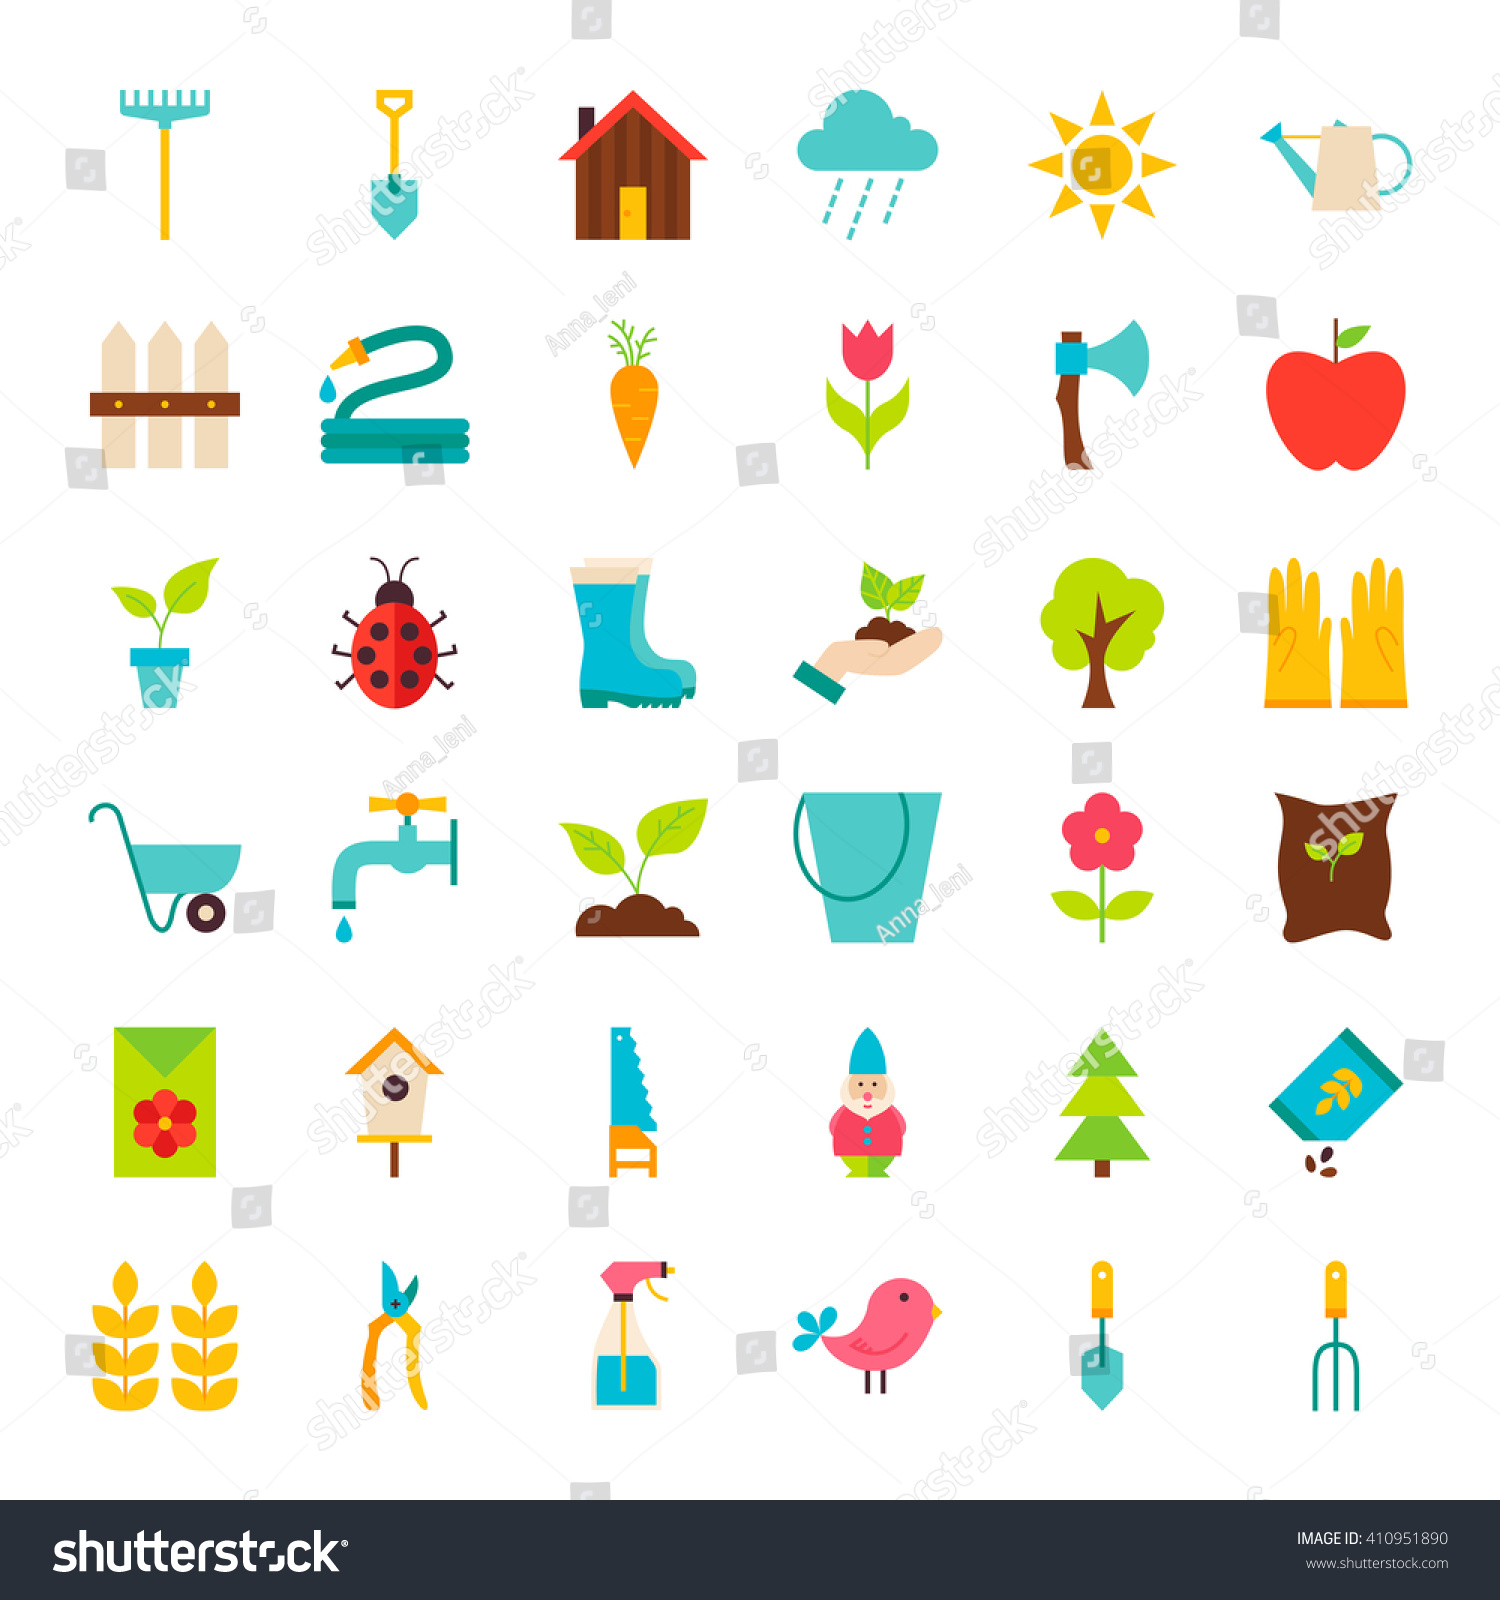 Big Spring Garden Objects Set. Flat Design Vector Illustration. Collection  Of Nature Gardening Items